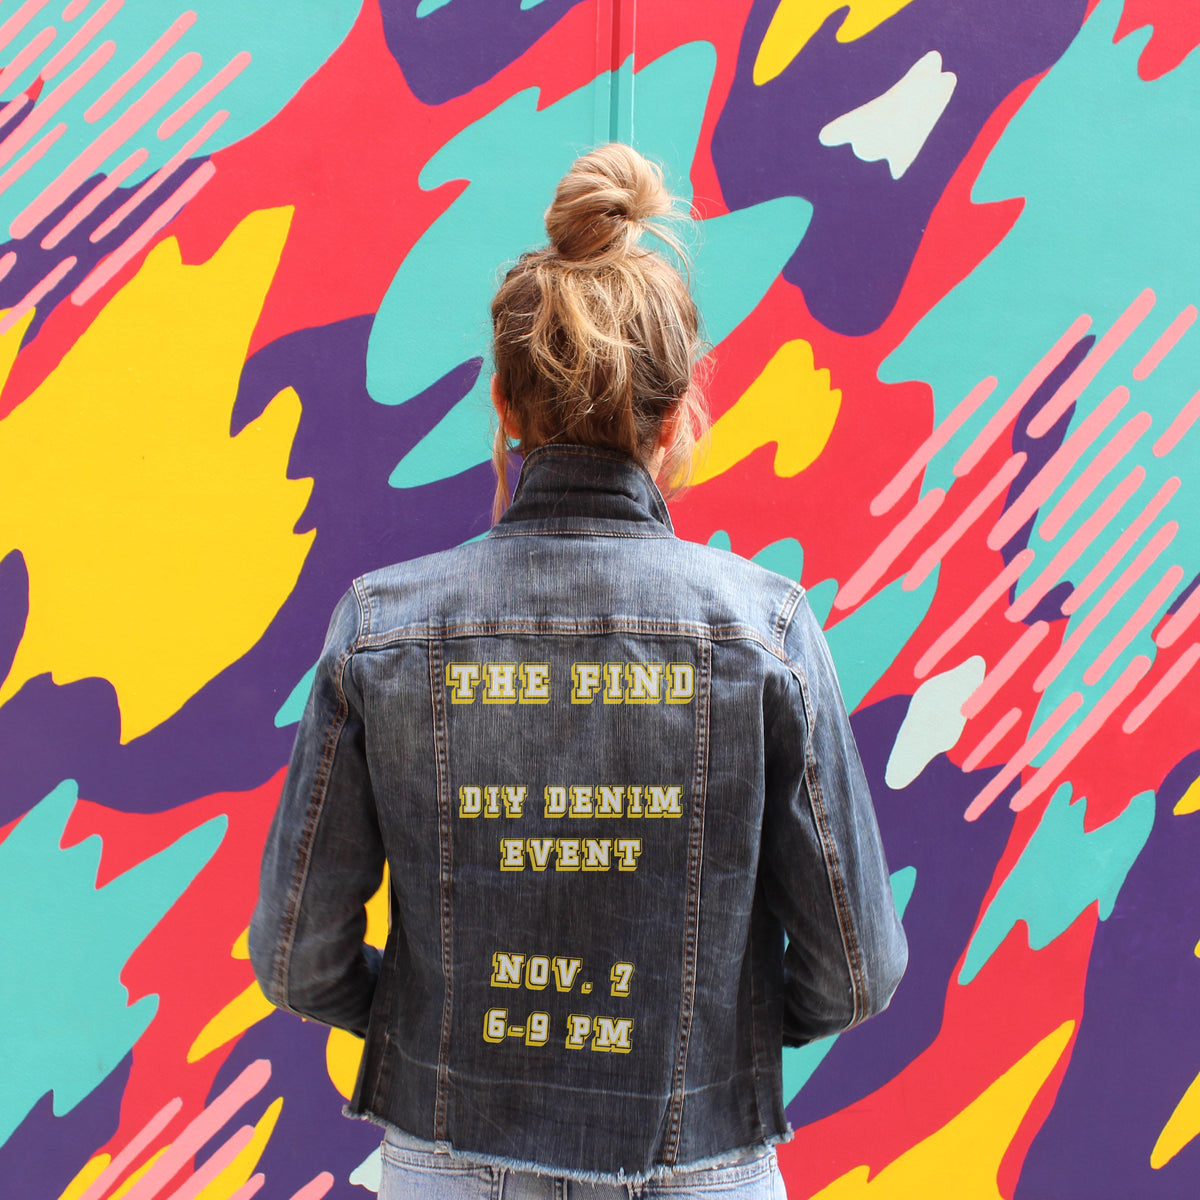 DIY Denim Jacket Event